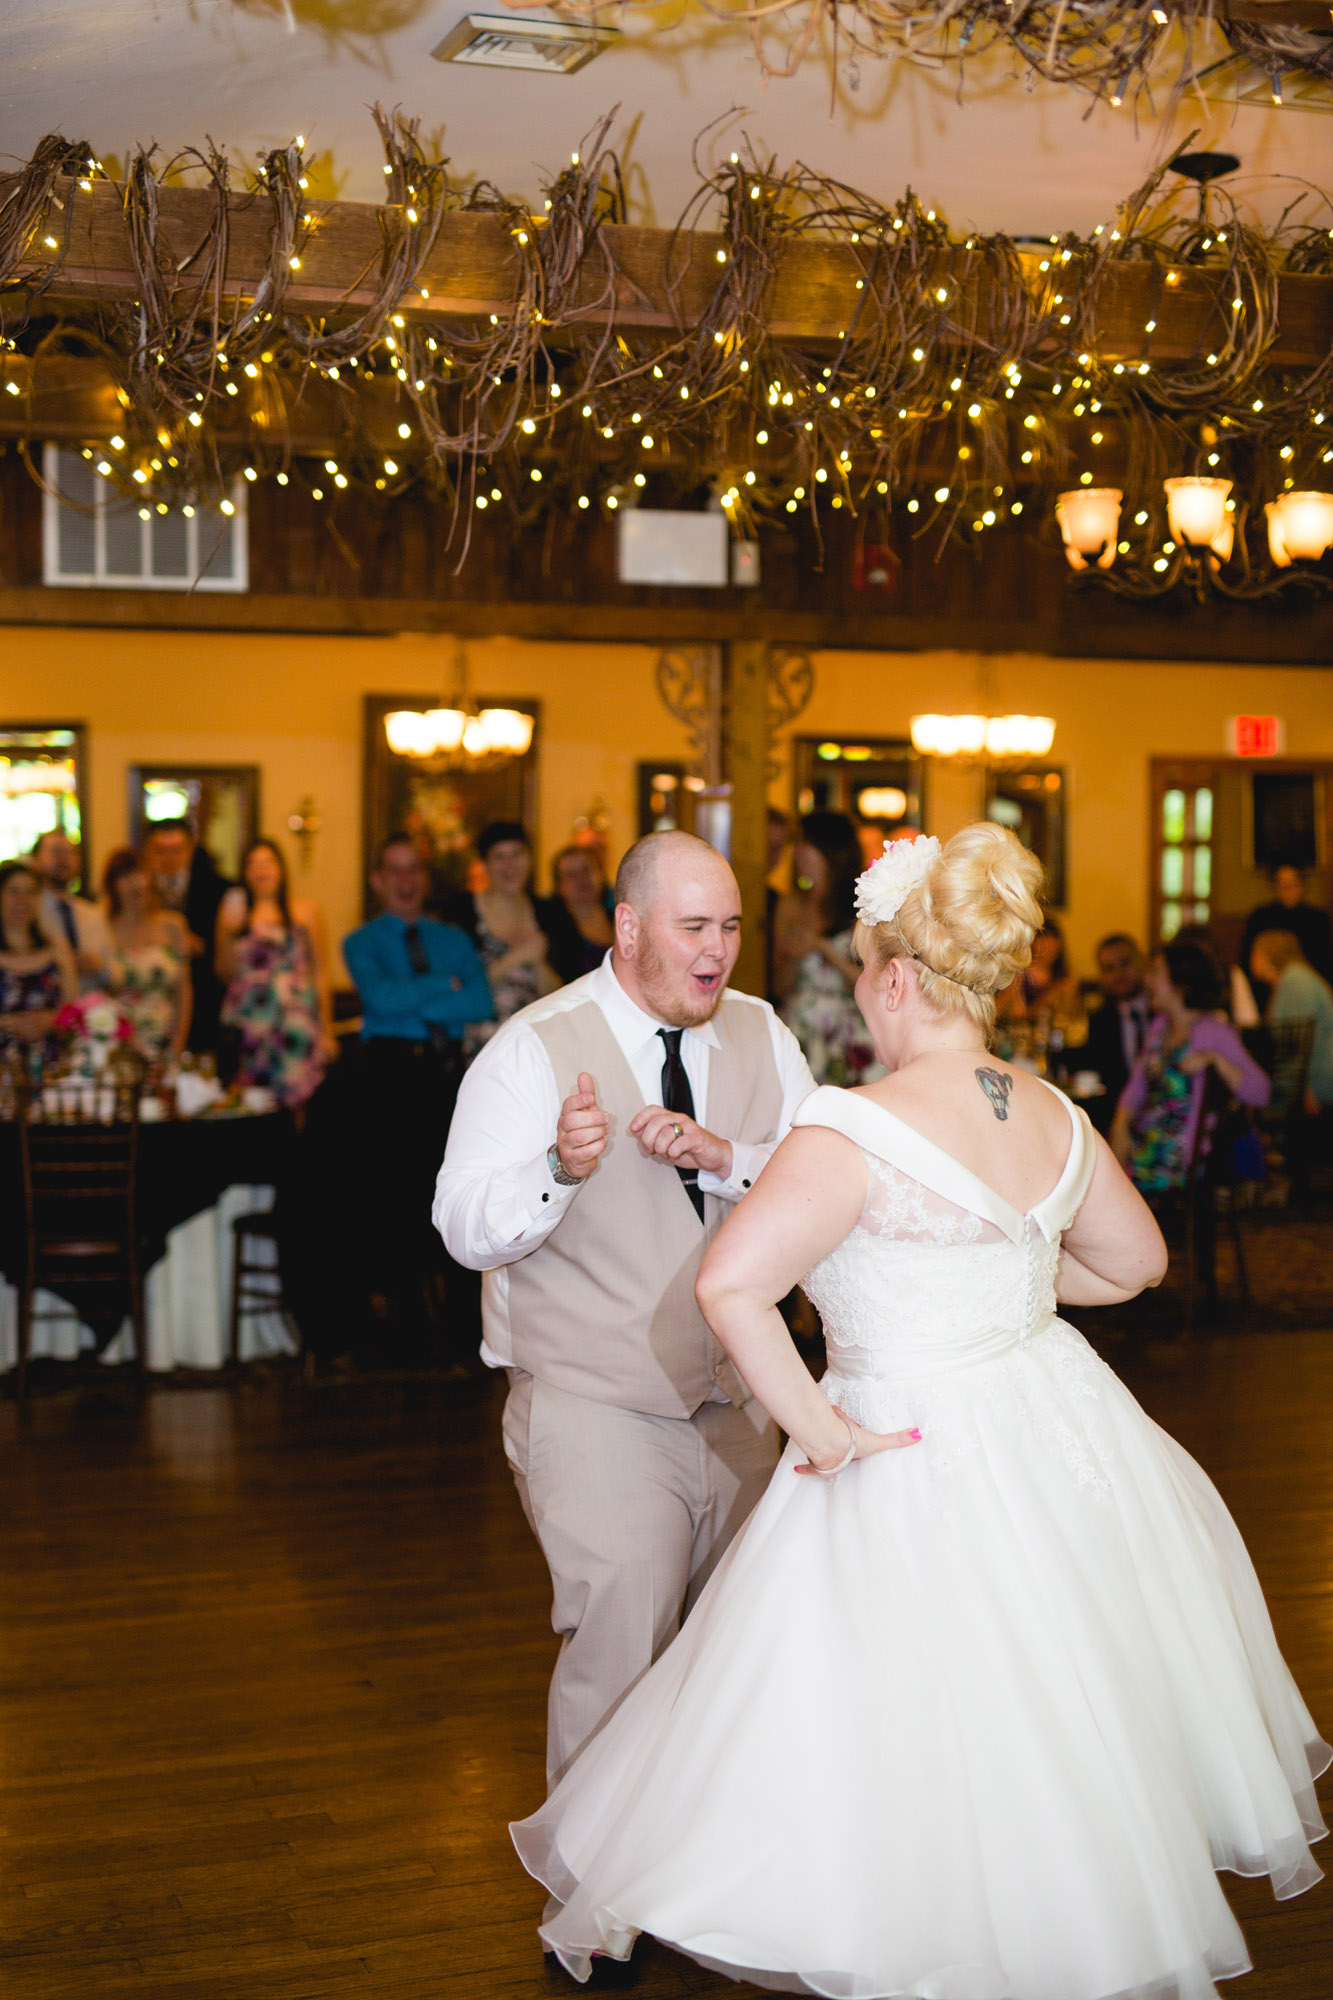 Caitlin & Joe's Stroudsmoor Woodsgate Wedding 80